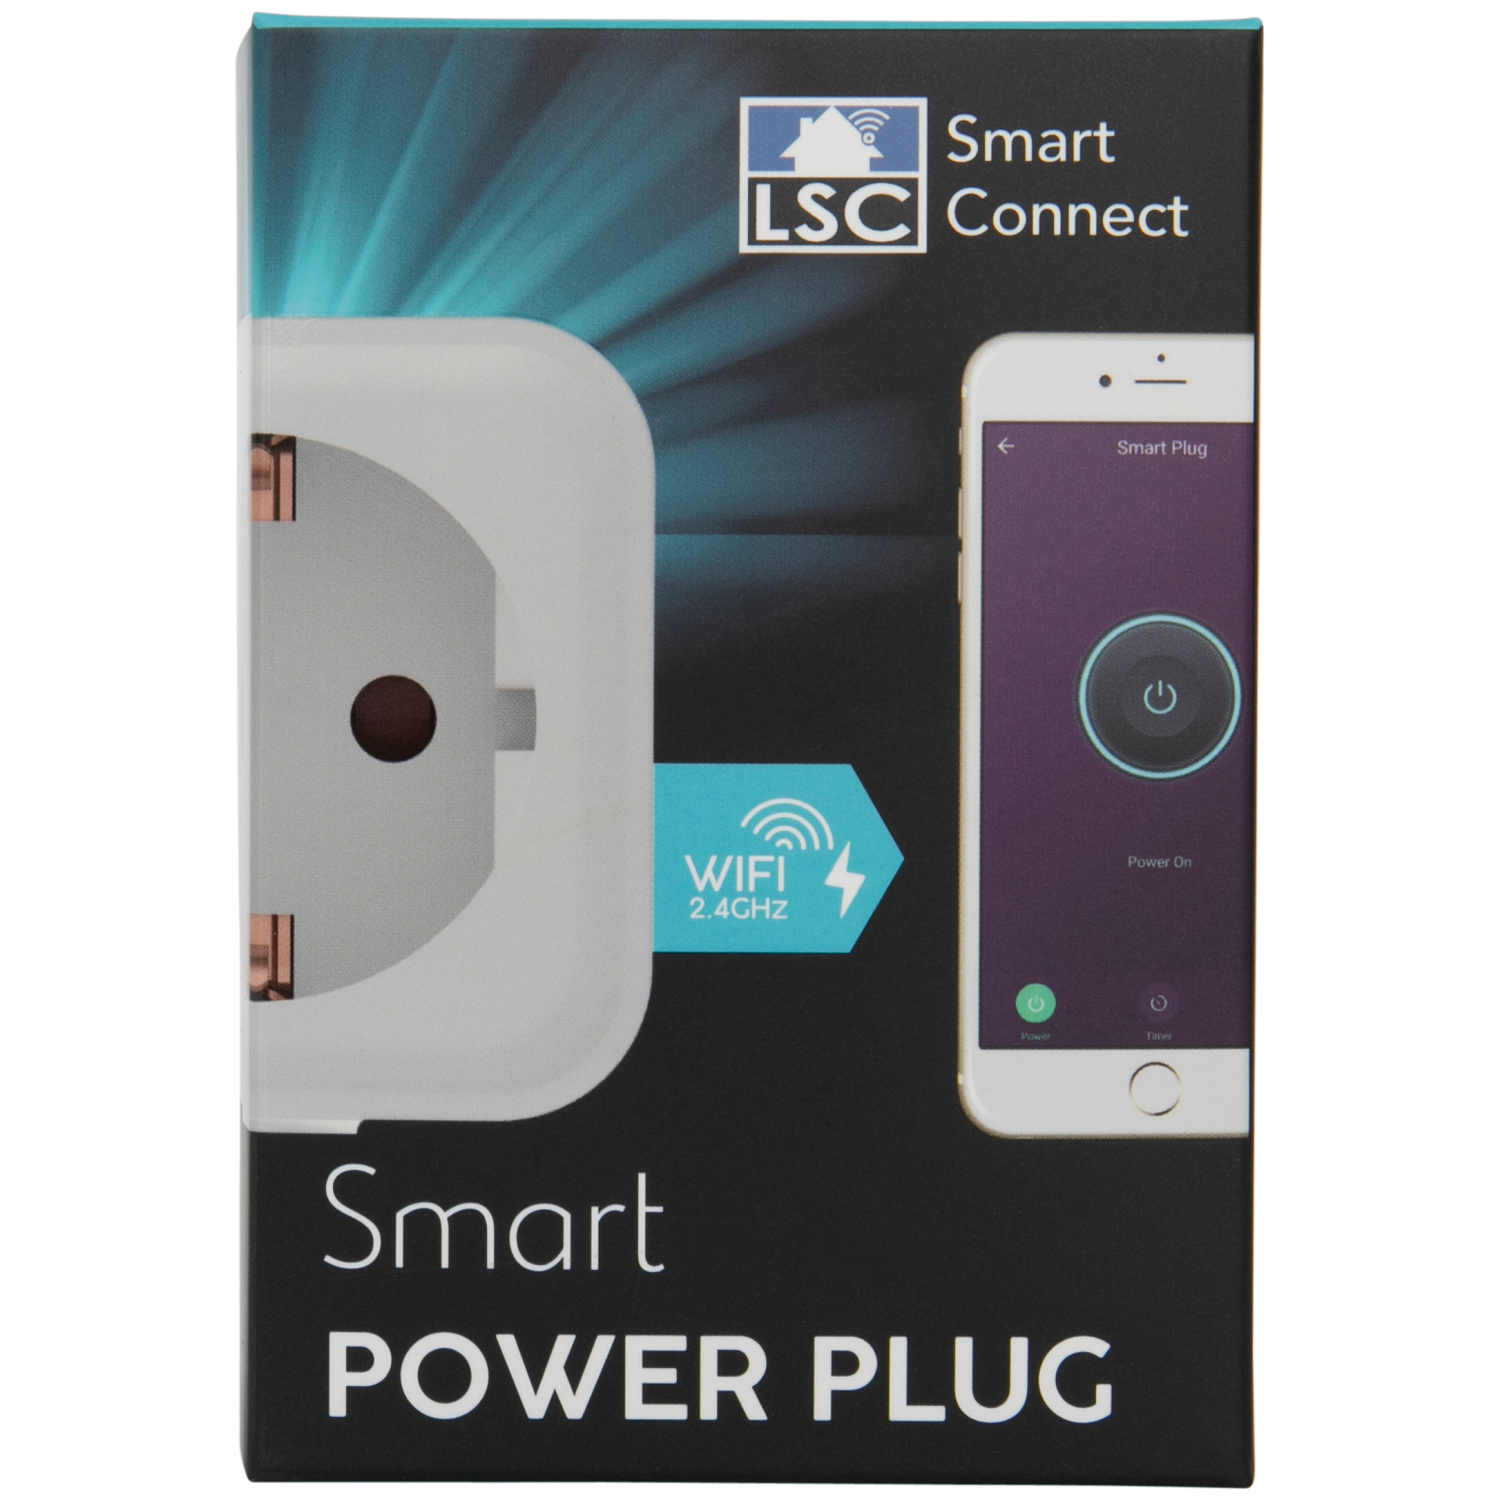 LSC Smart Connect Power